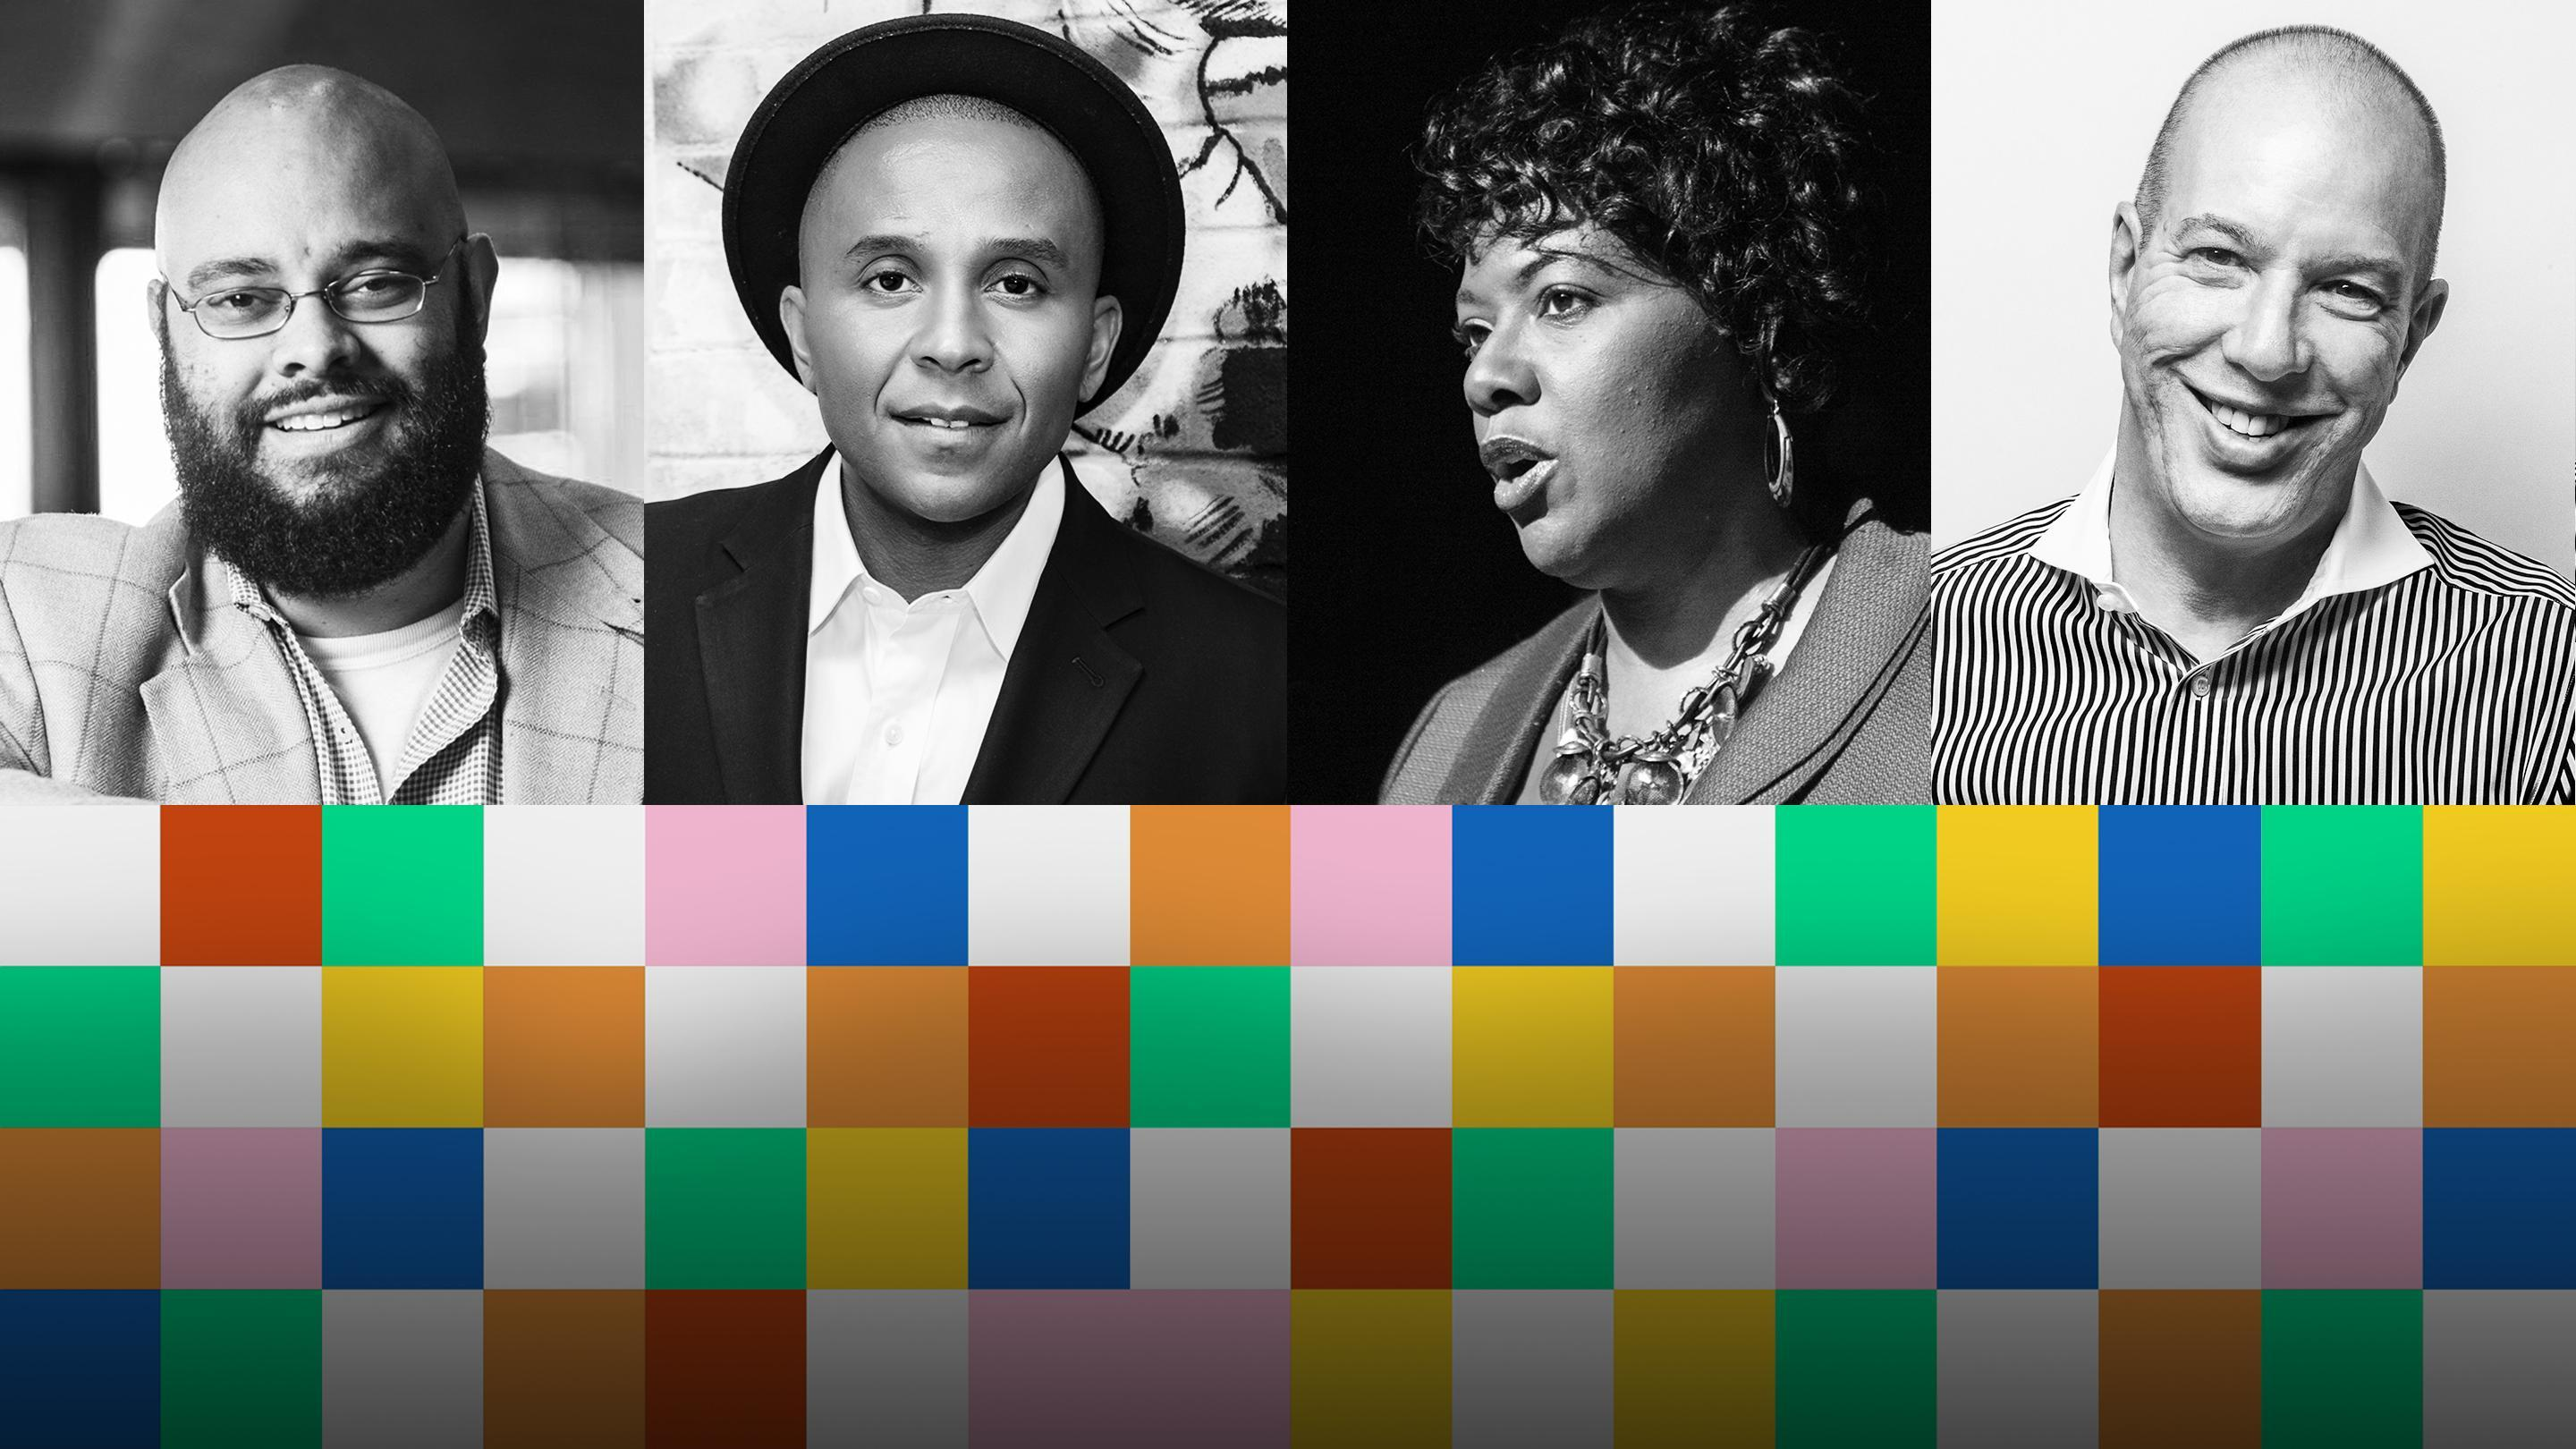 Part 2: The path to ending systemic racism in the US | Dr. Phillip Atiba Goff, Rashad Robinson, Dr. Bernice King, Anthony D. Romero